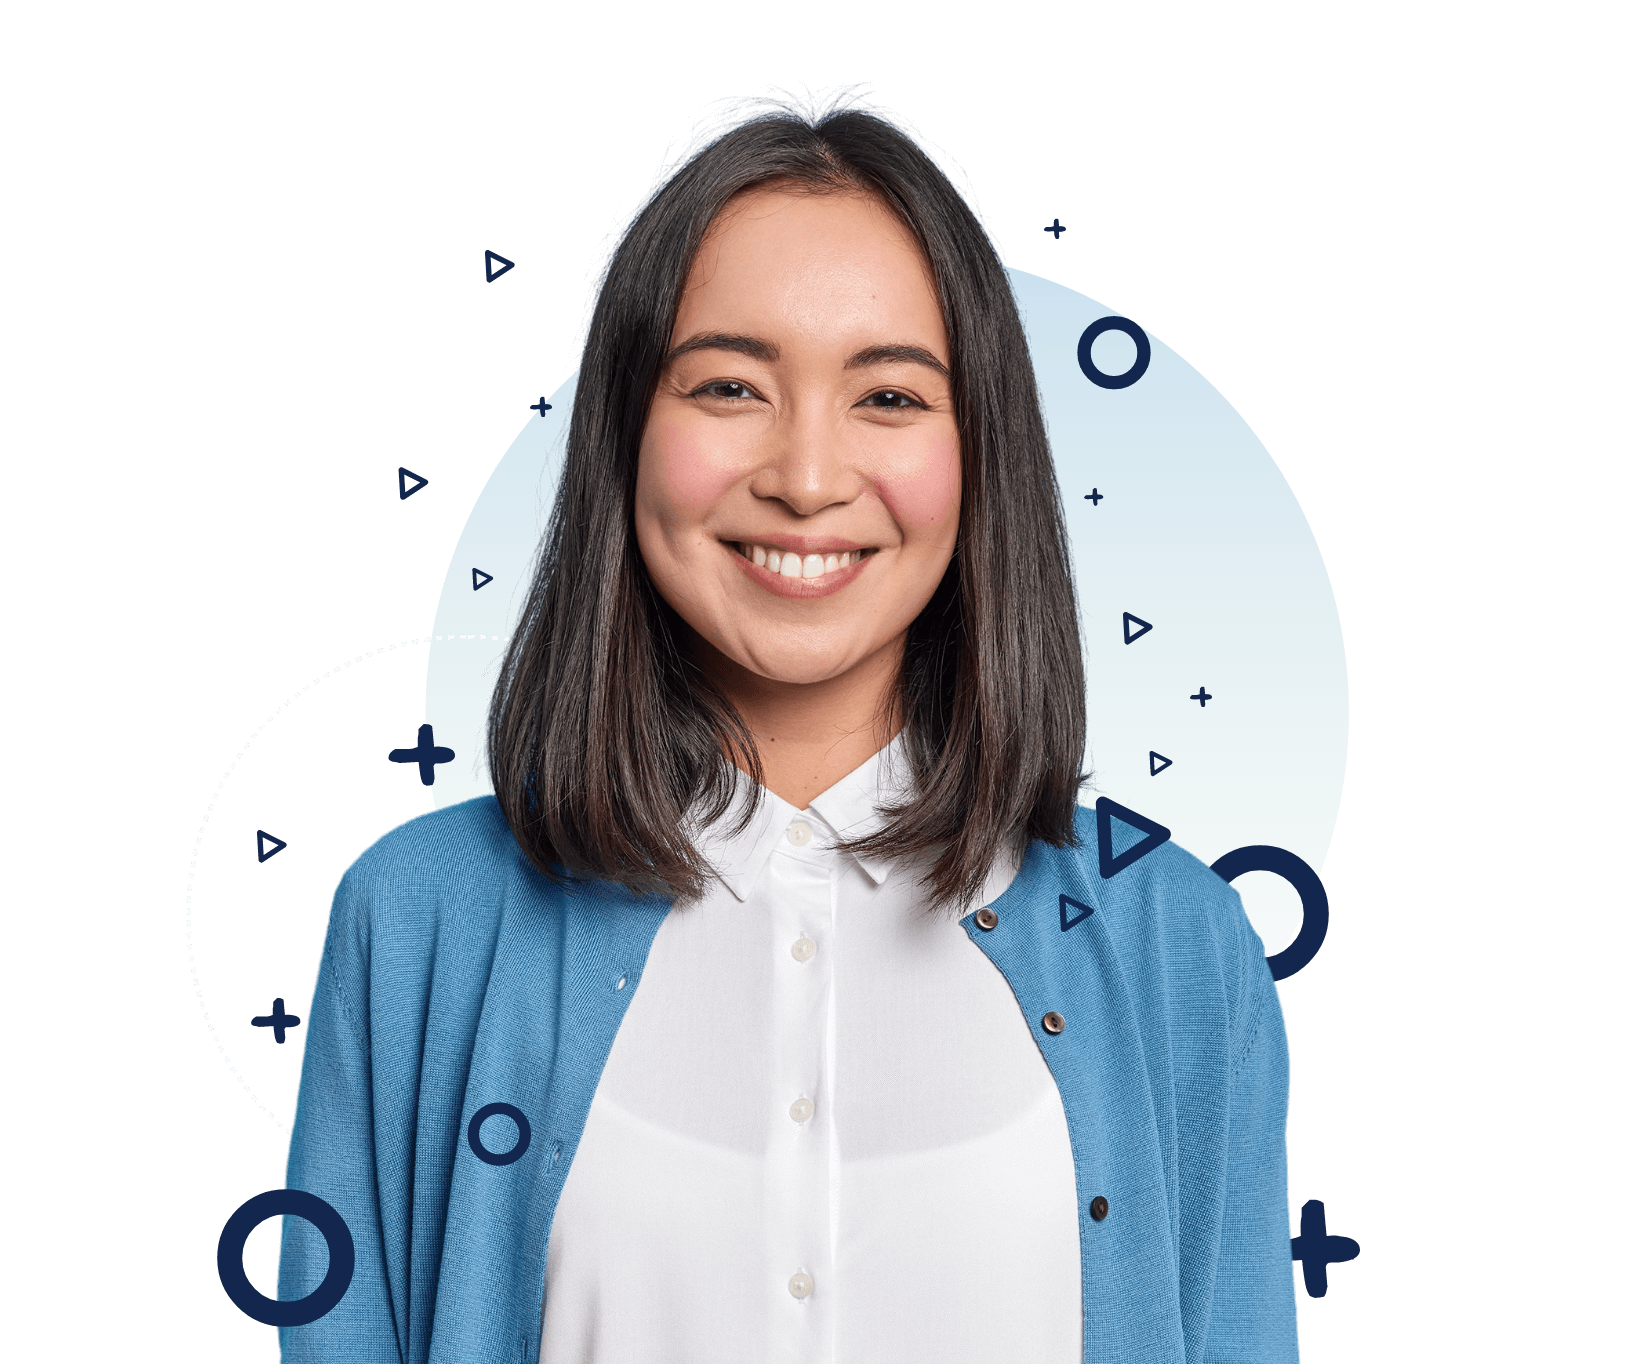 WayMore.io solutions marketing manager